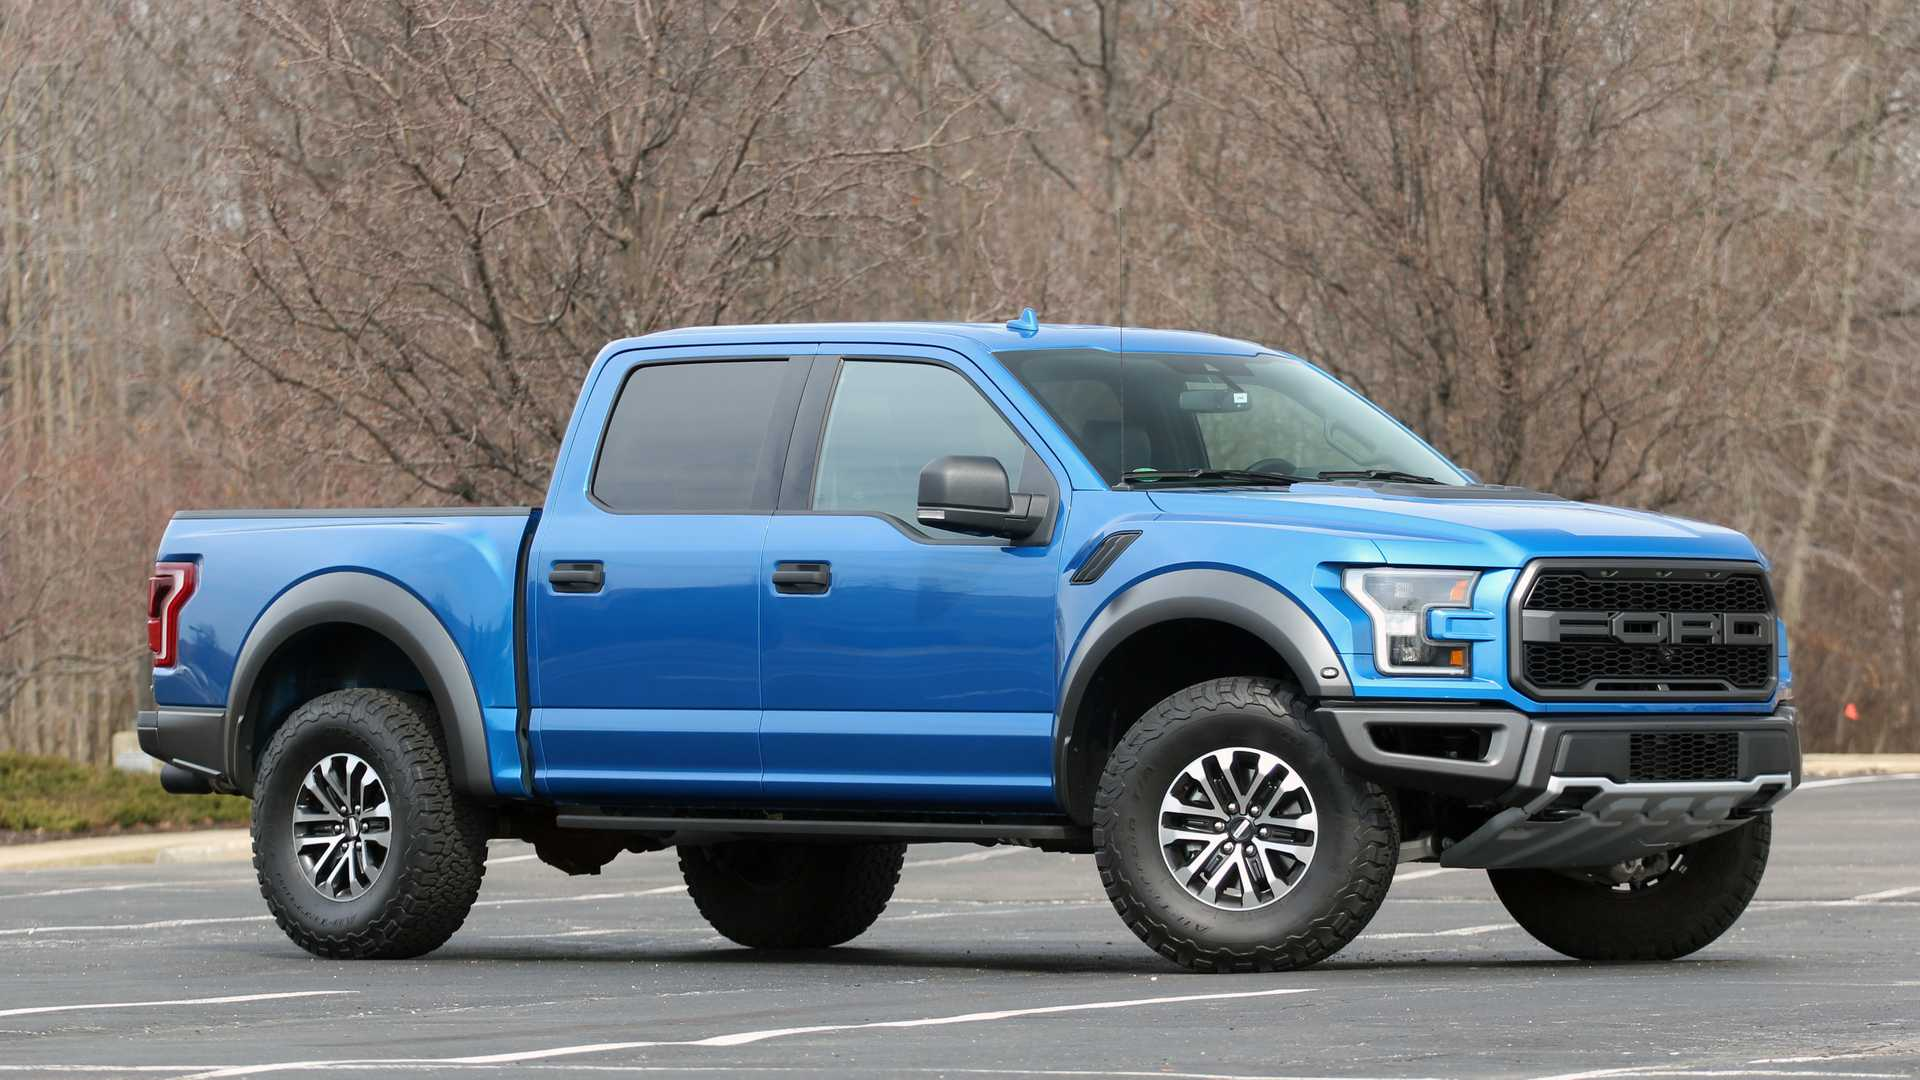 52 The Best 2019 All Ford F150 Raptor History